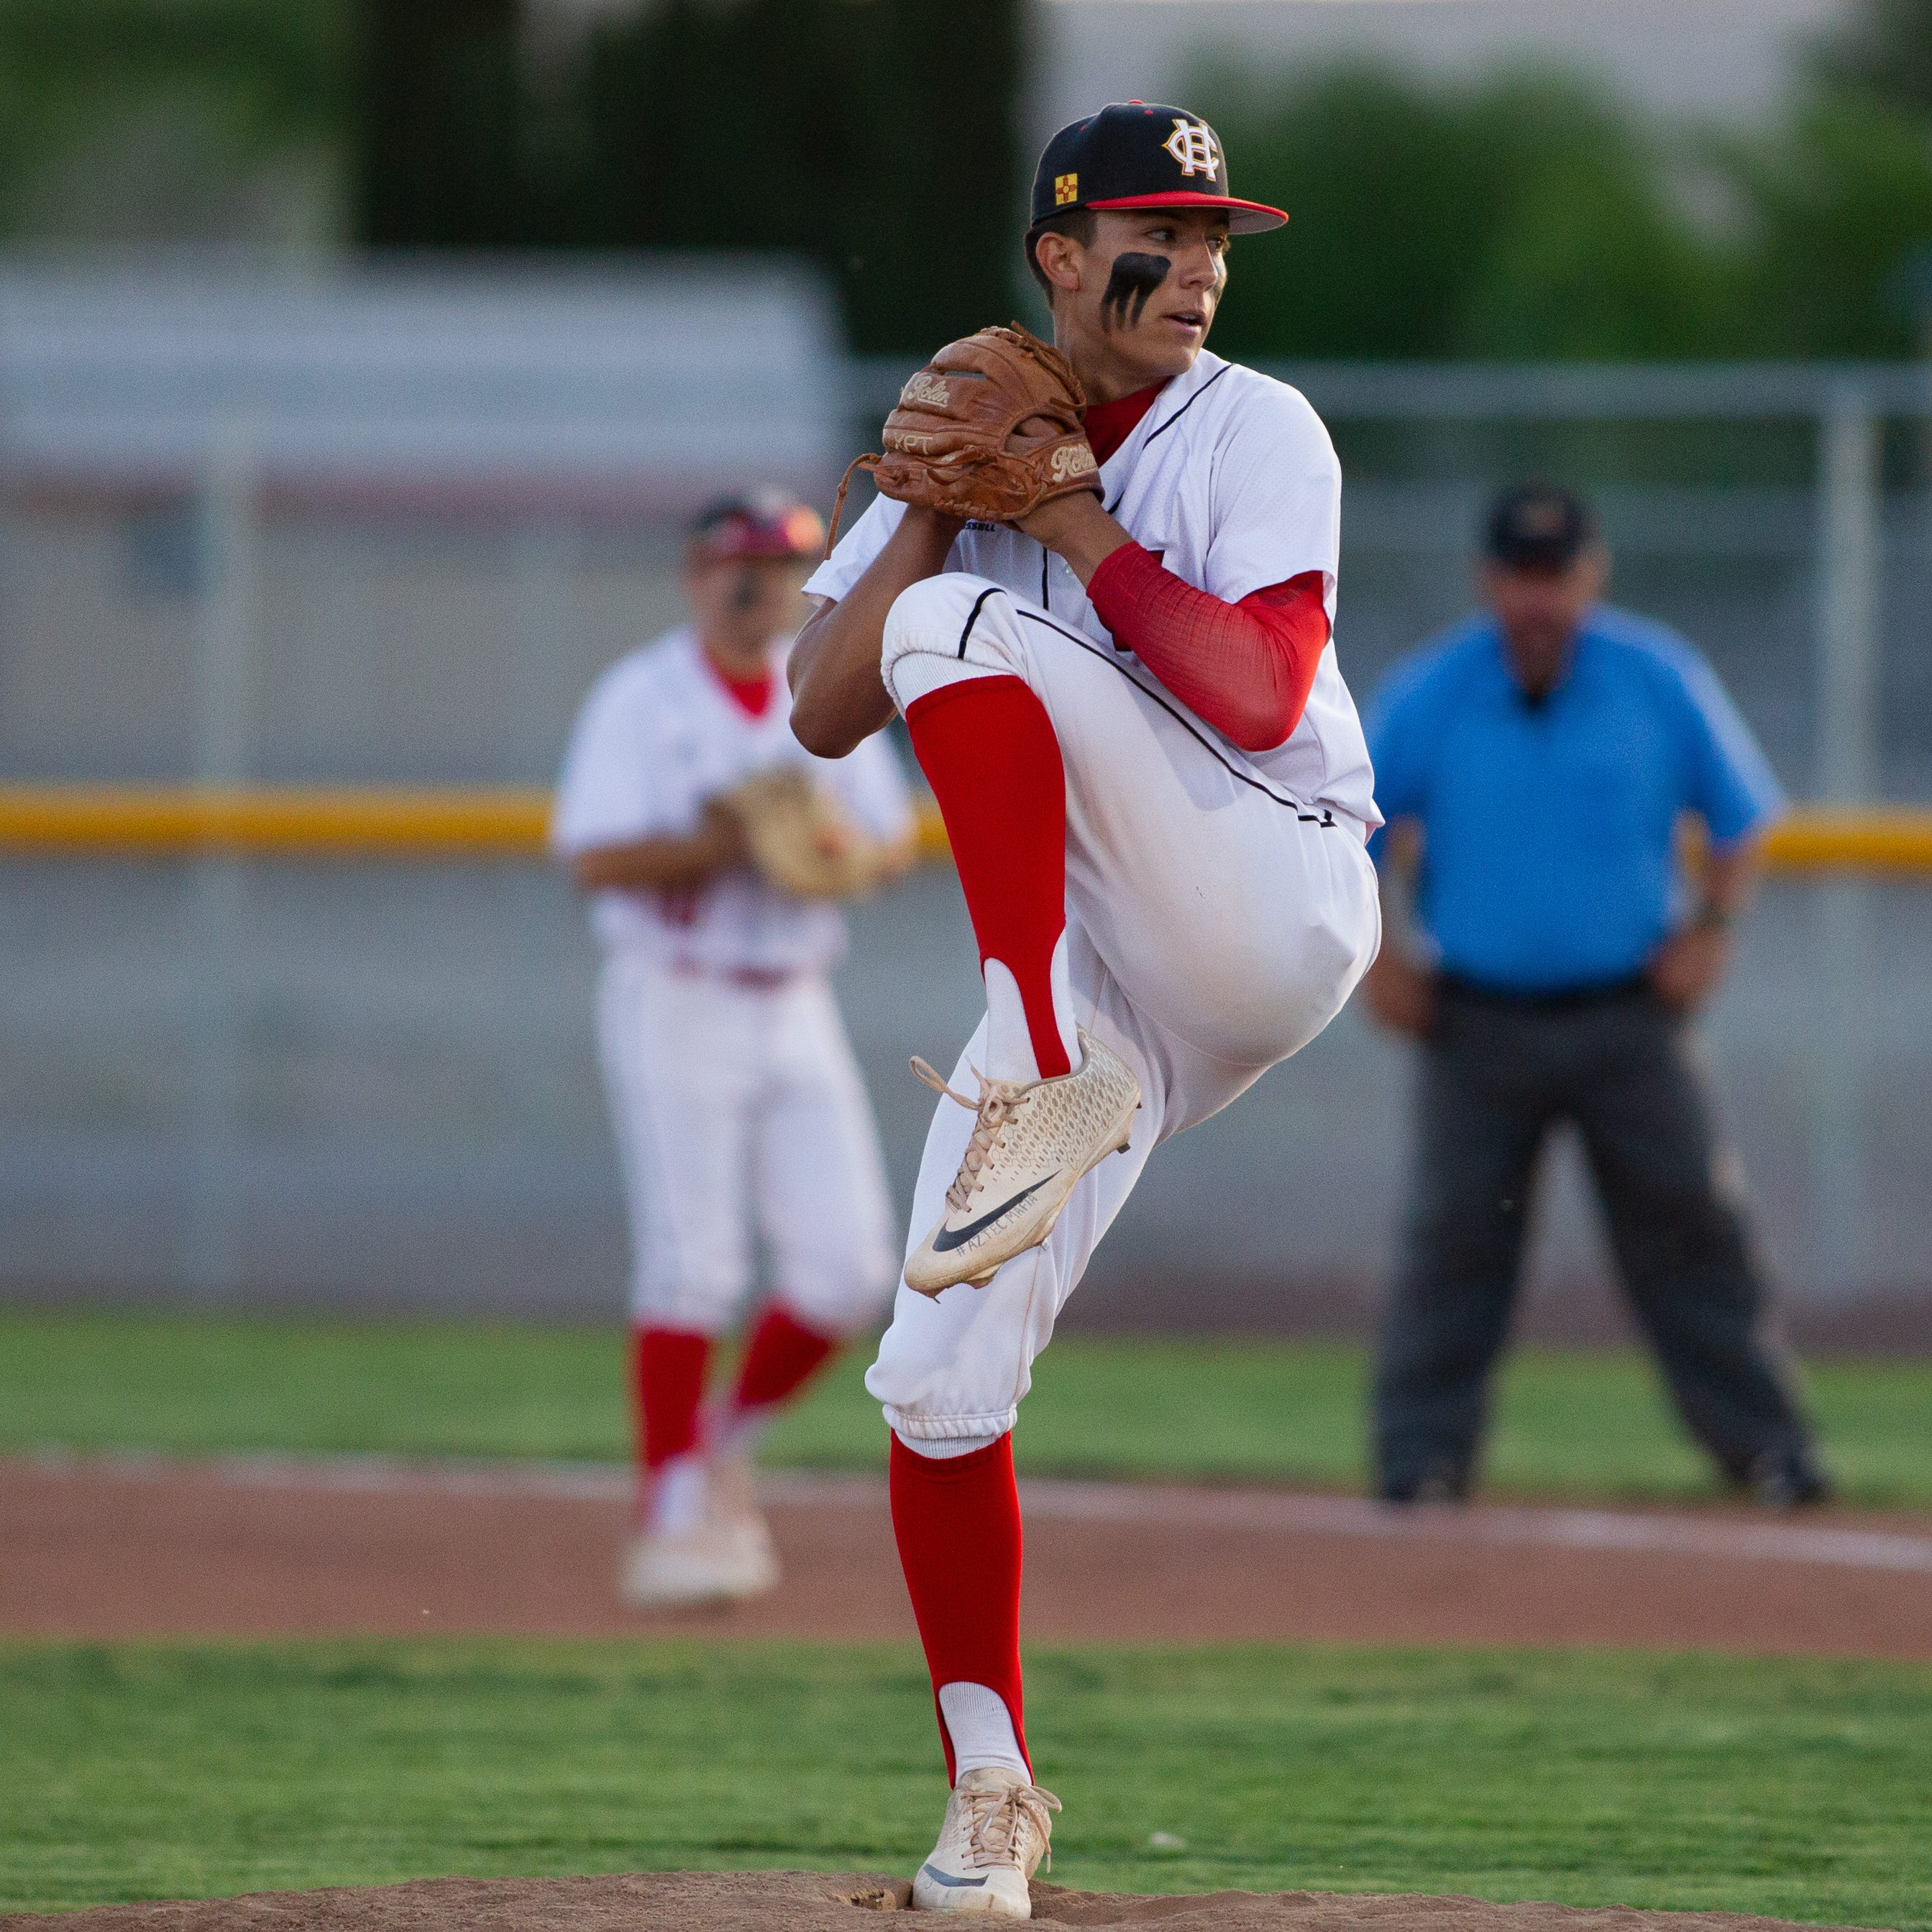 Led by Aggies commit Wilson Bannister, Centennial baseball has dominated district